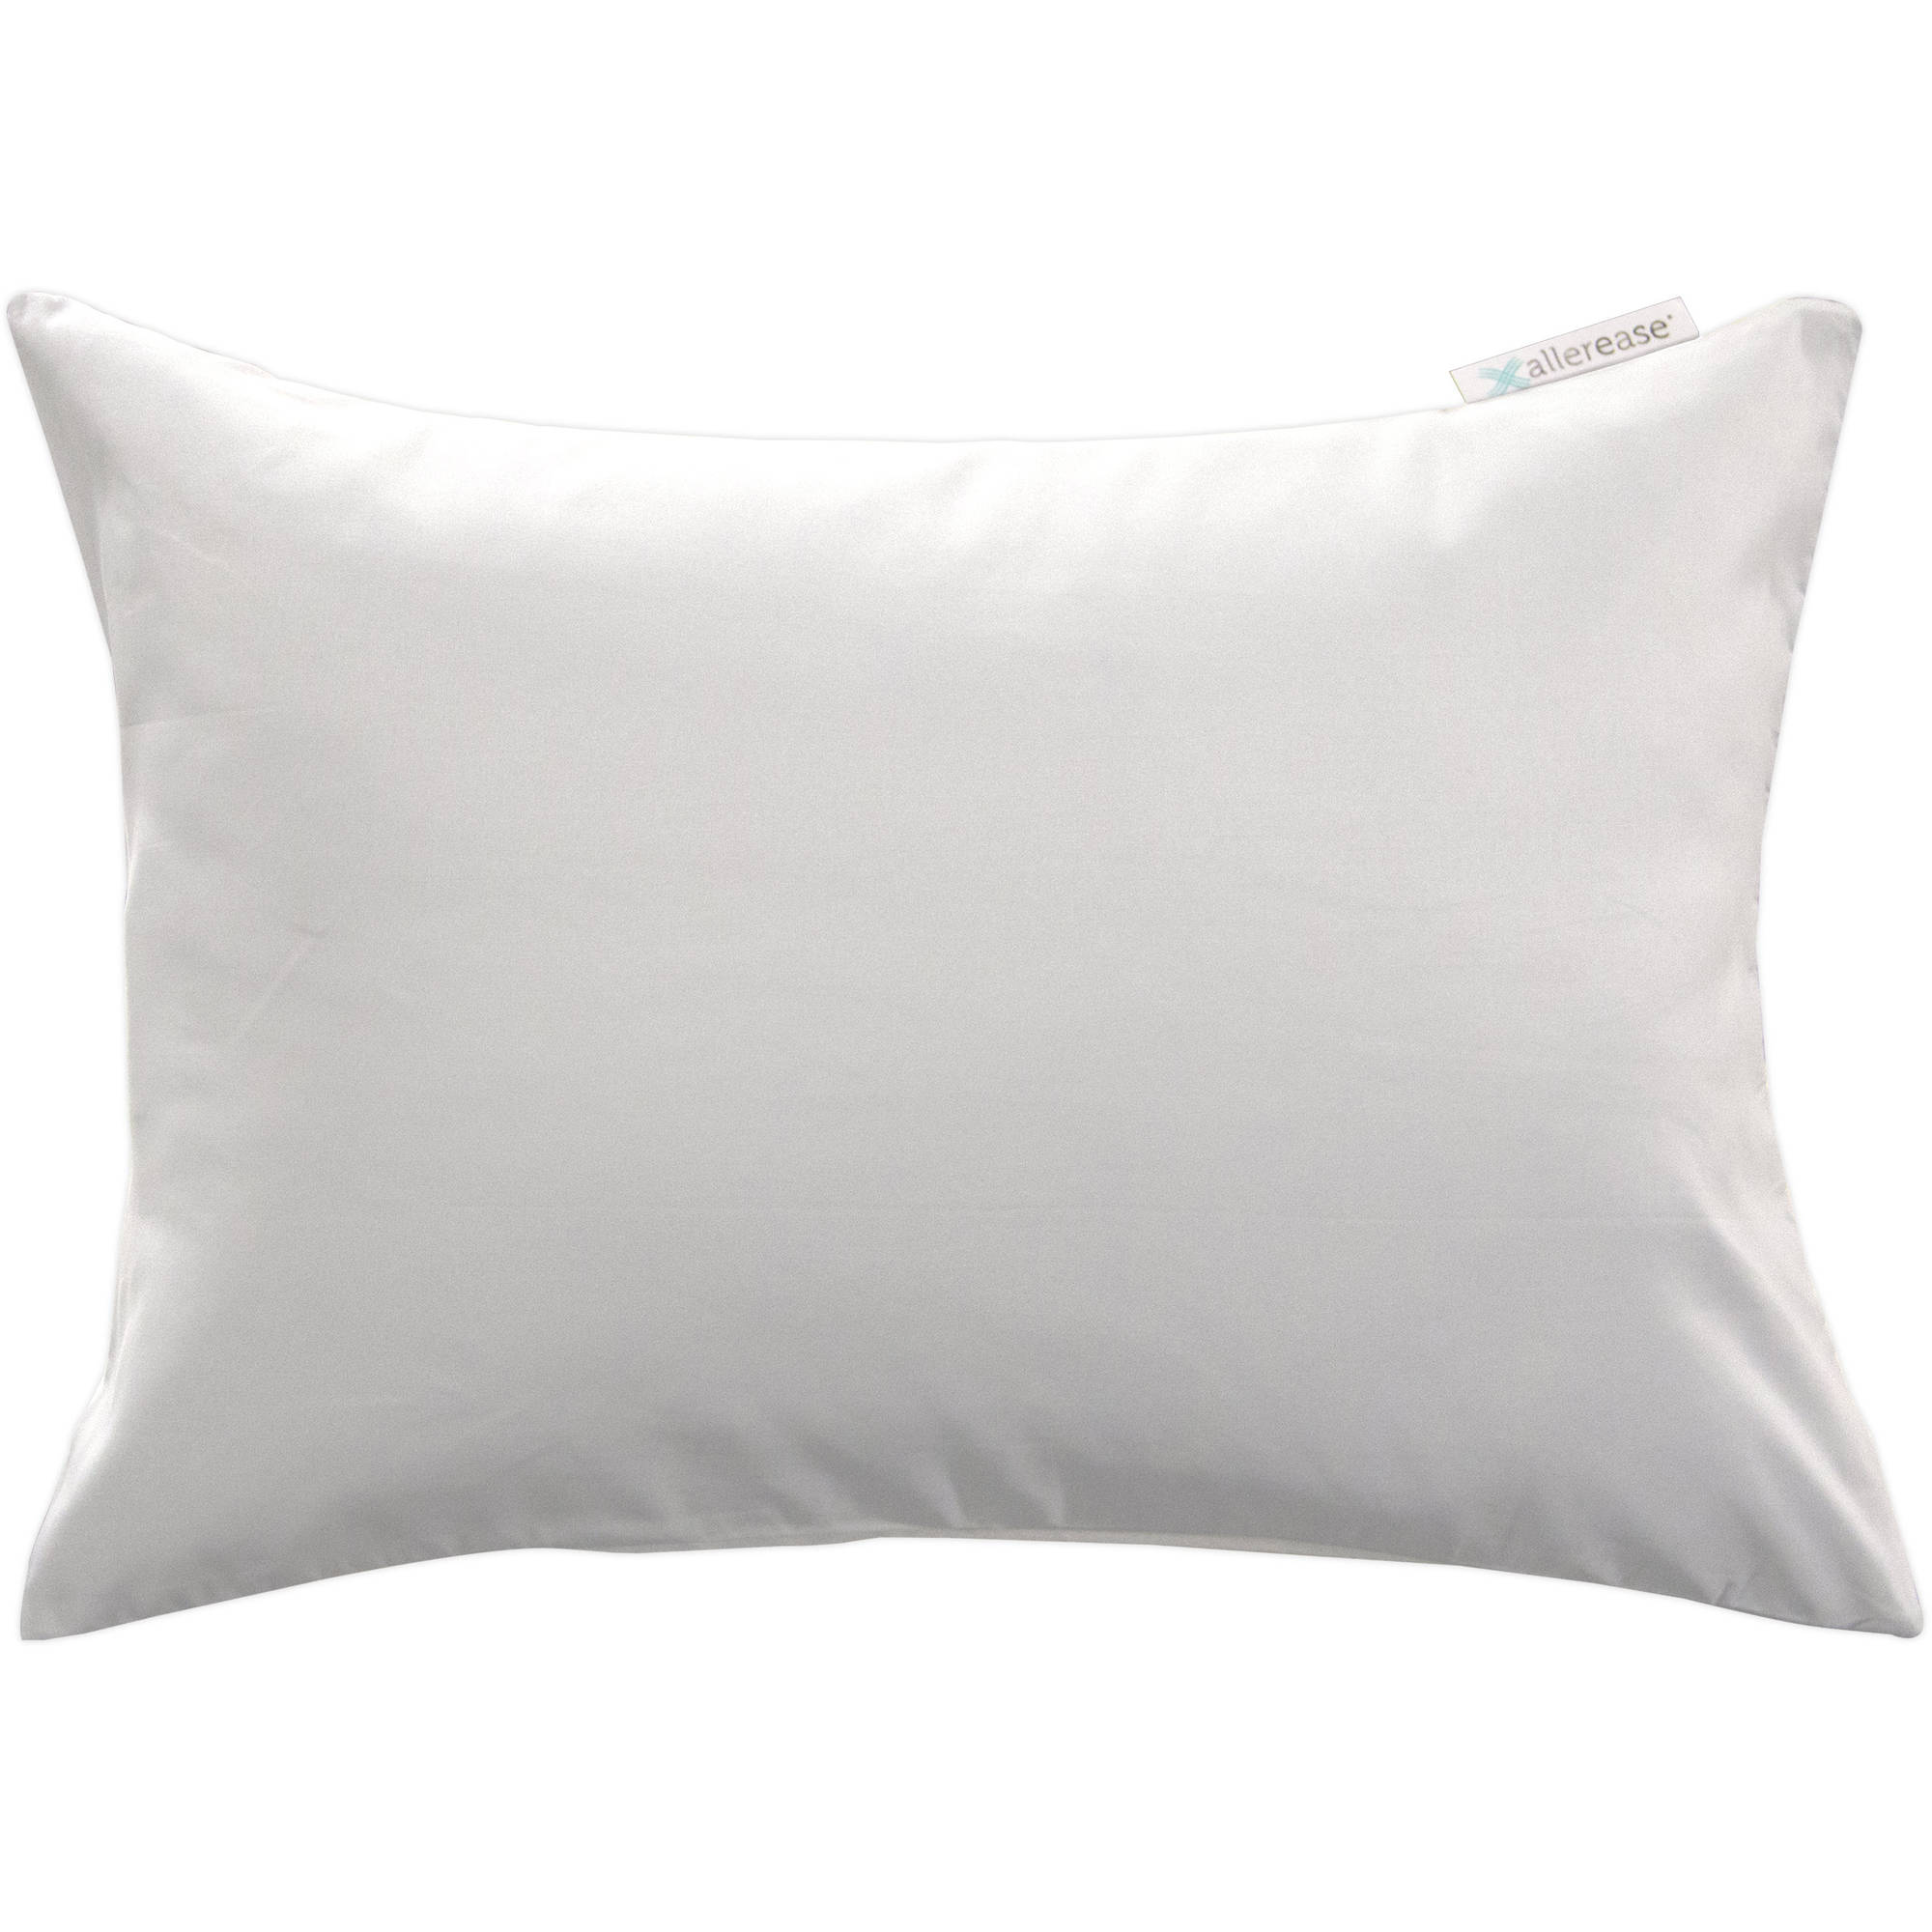 allerease 14 x 20 zippered travel pillow protector 1 each